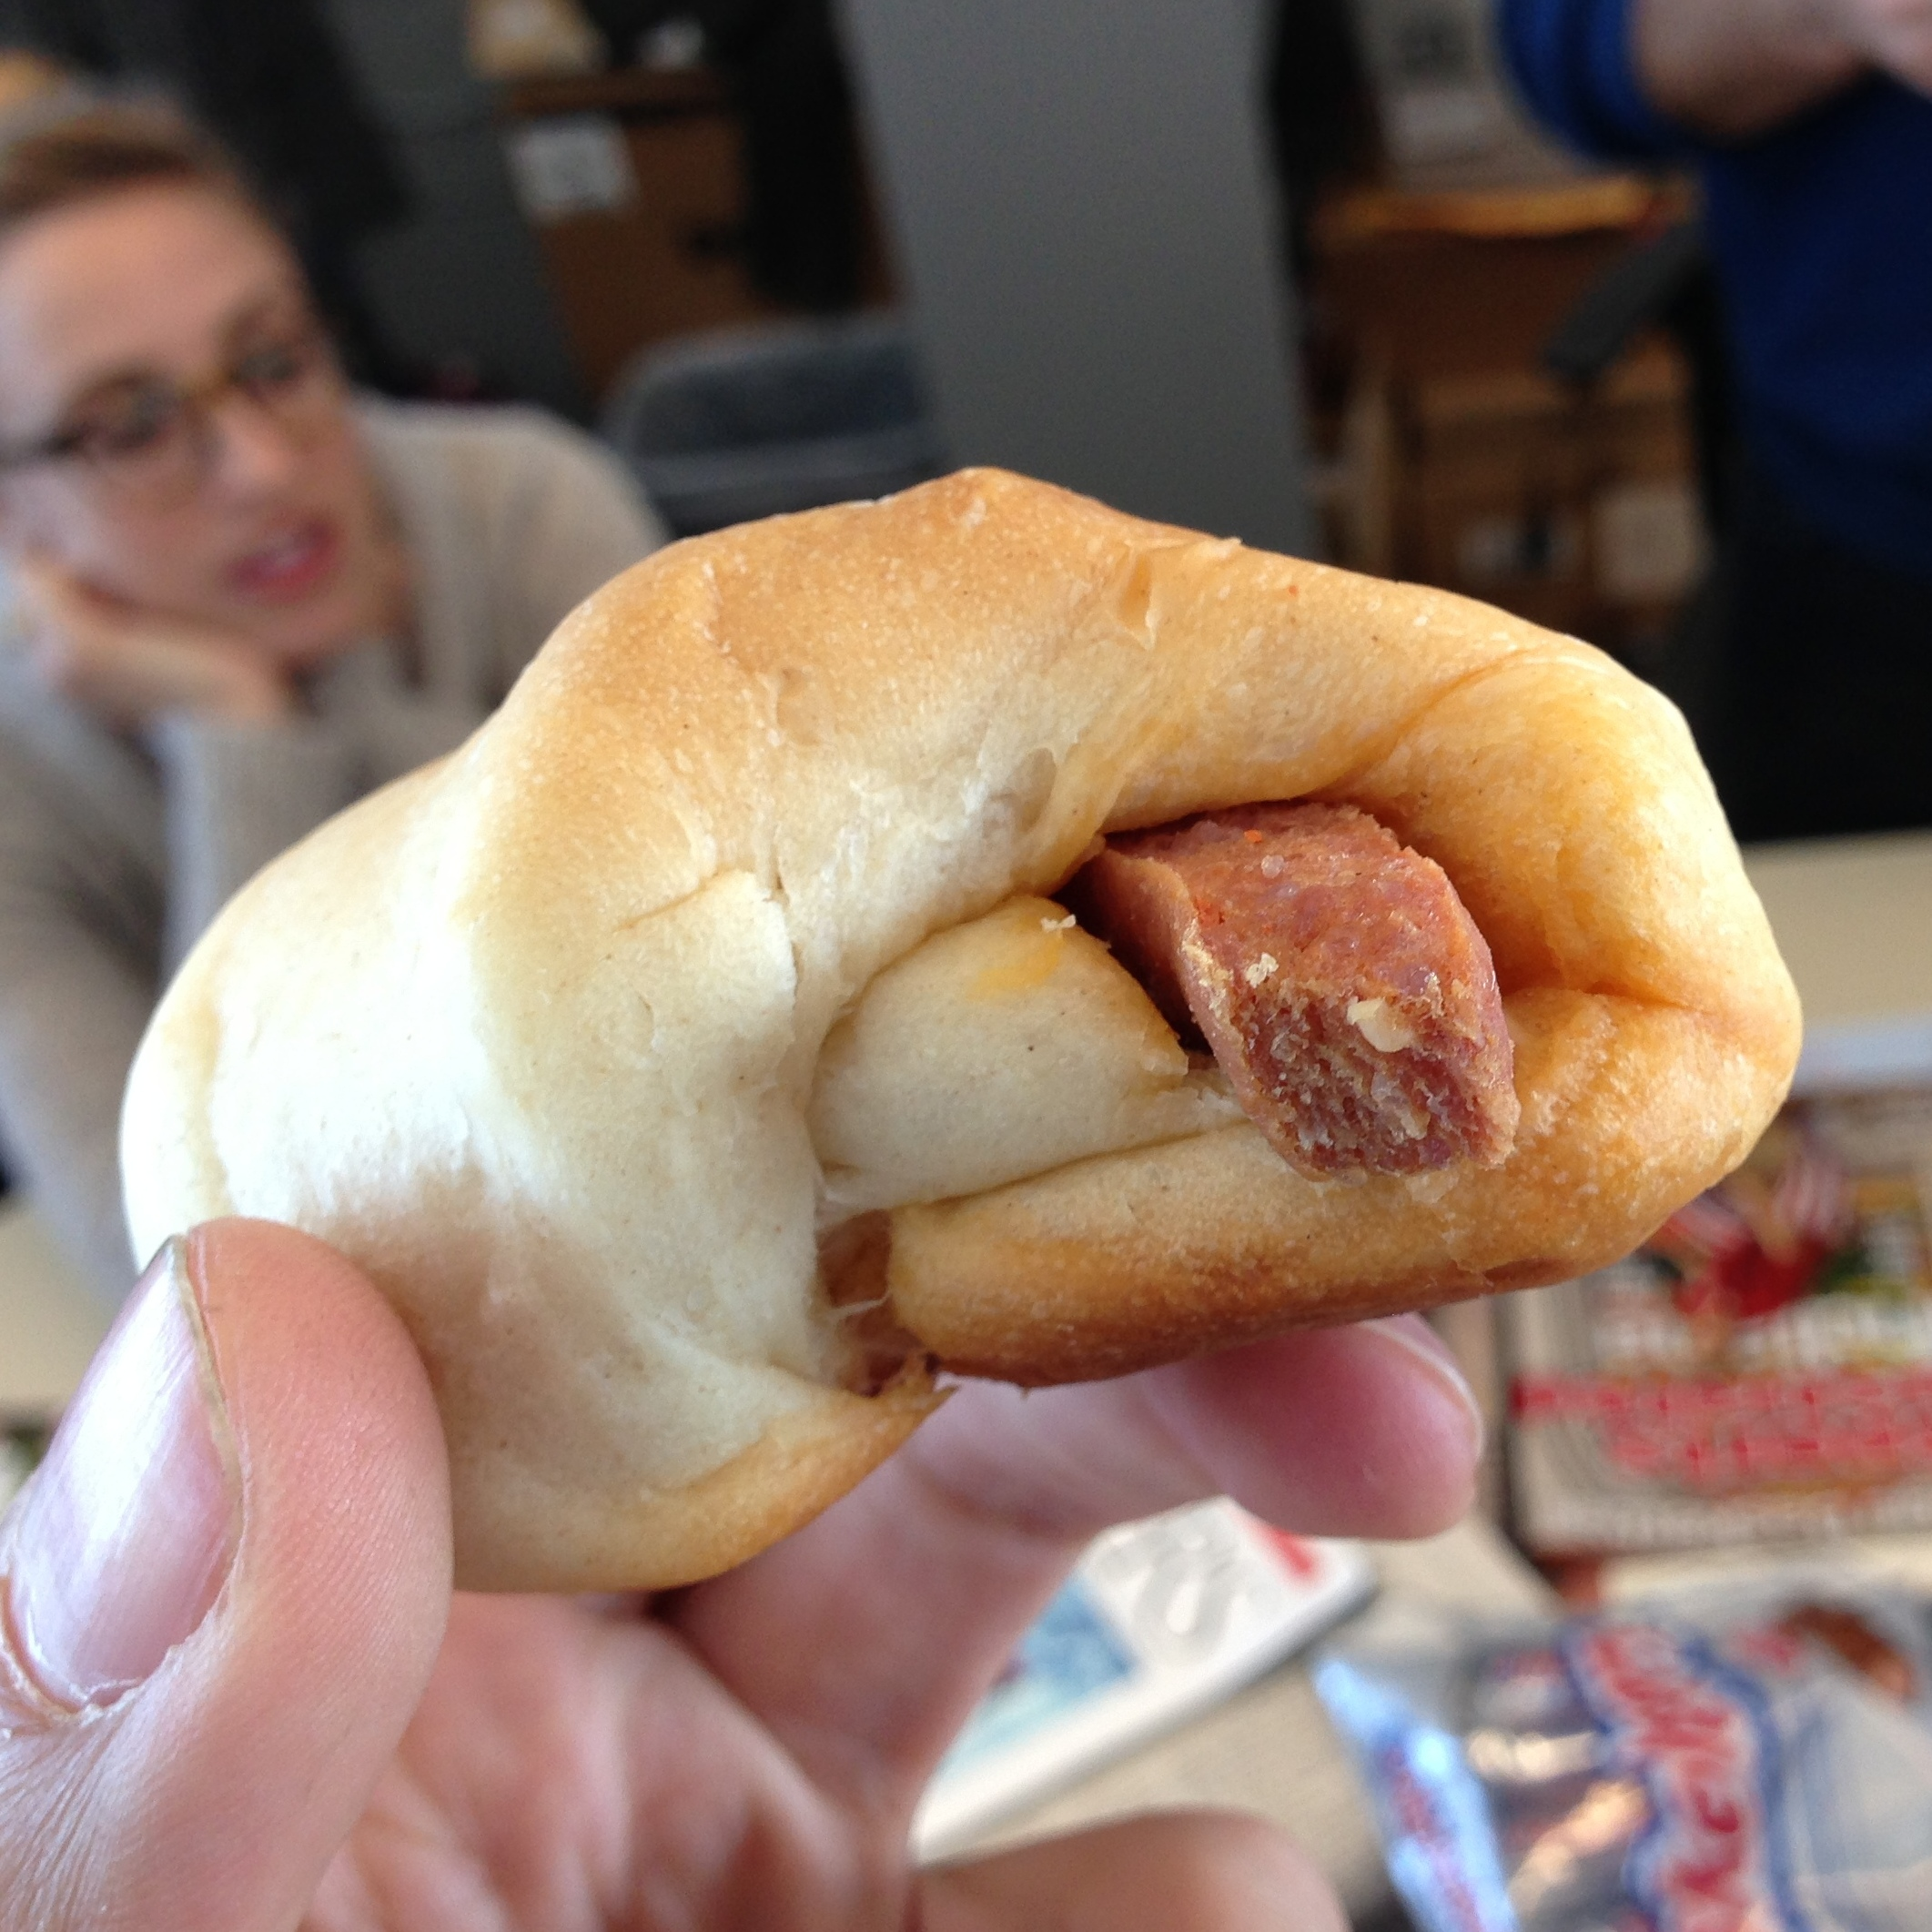 The mighty pepperoni roll.